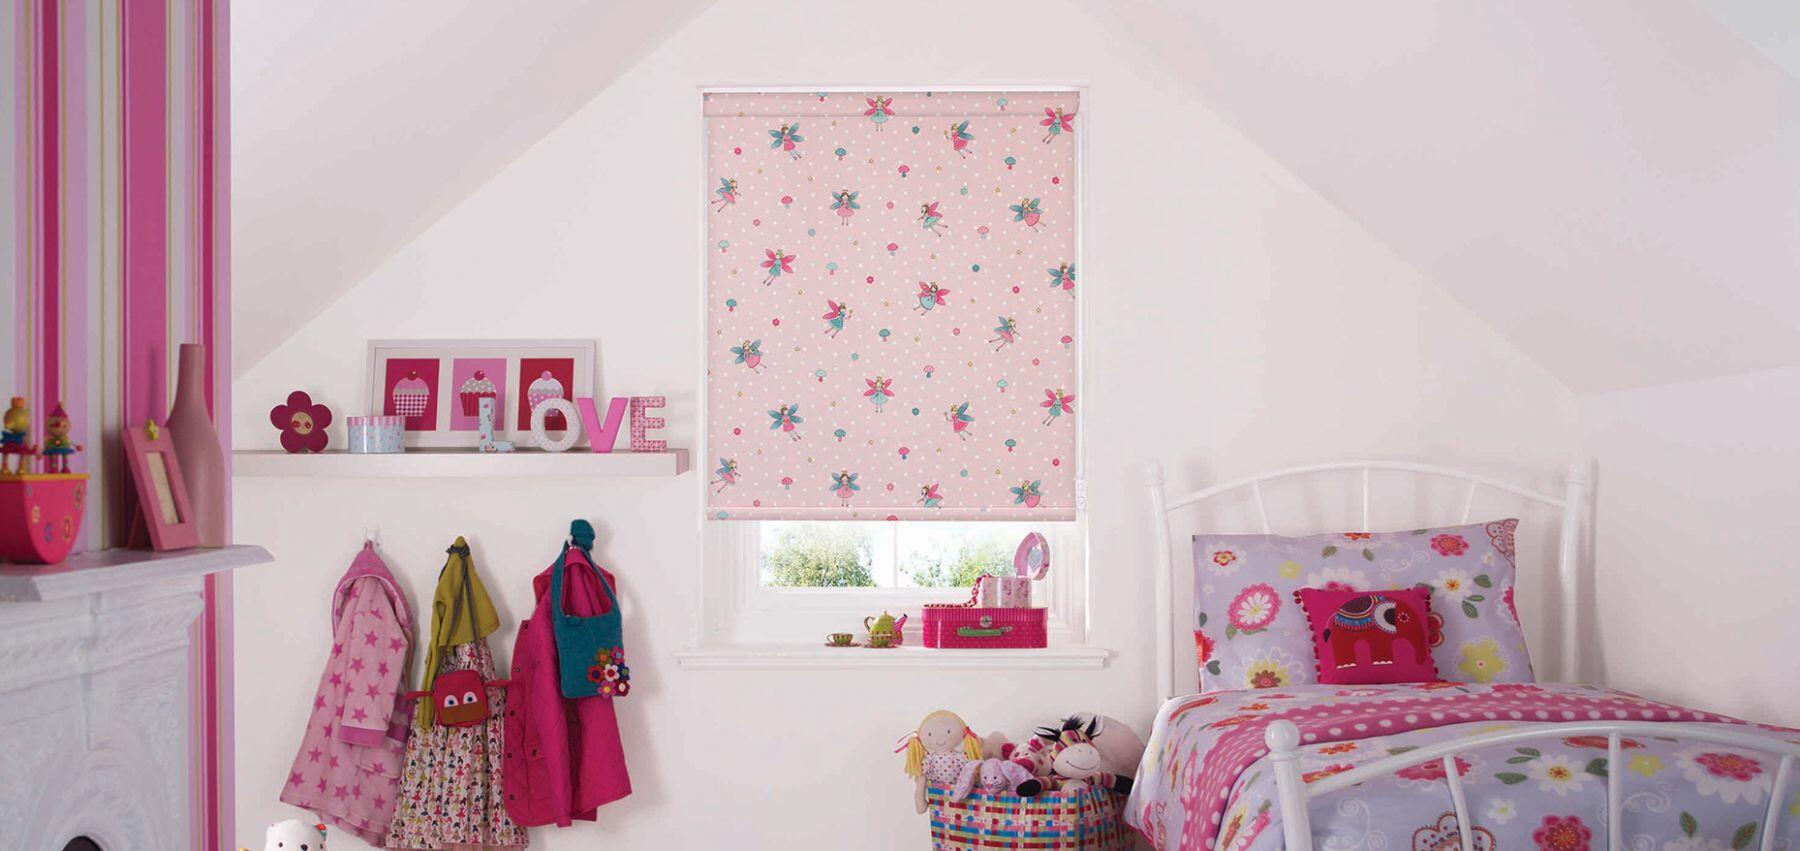 Custom Printed Roller Blinds